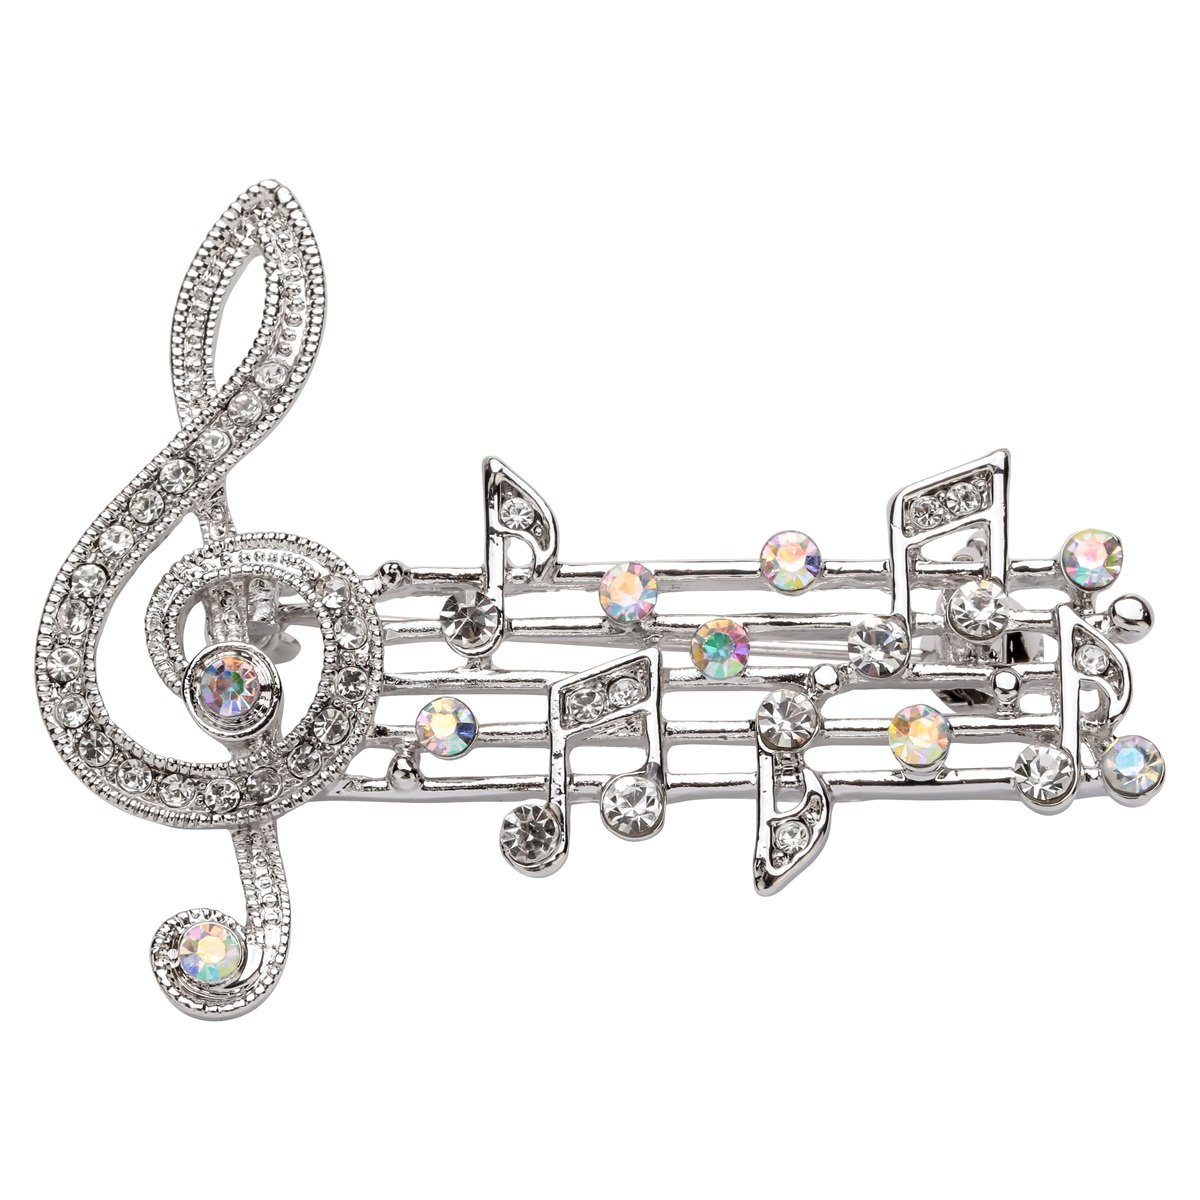 Szxc Crystal Music Note Brooch Pin Accessories For Her Women Jewelry